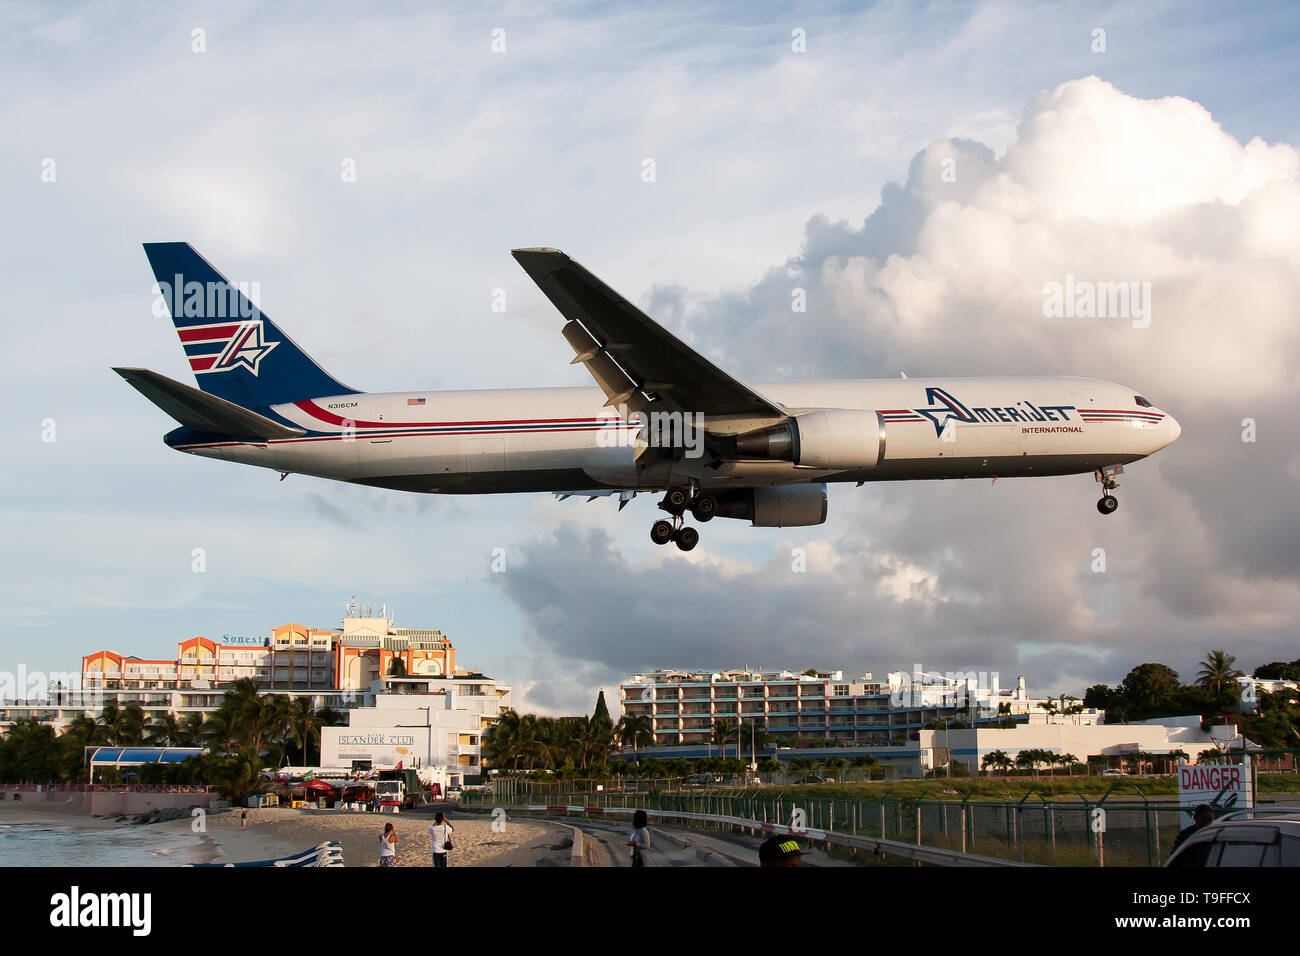 Simpson Bay, Saint Martin. 9th Dec, 2016. An Amerijet International Boeing 767-300ER freighter seen landing at airport Princess Juliana just over Maho beach. Credit: Fabrizio Gandolfo/SOPA Images/ZUMA Wire/Alamy Live News - Stock Image